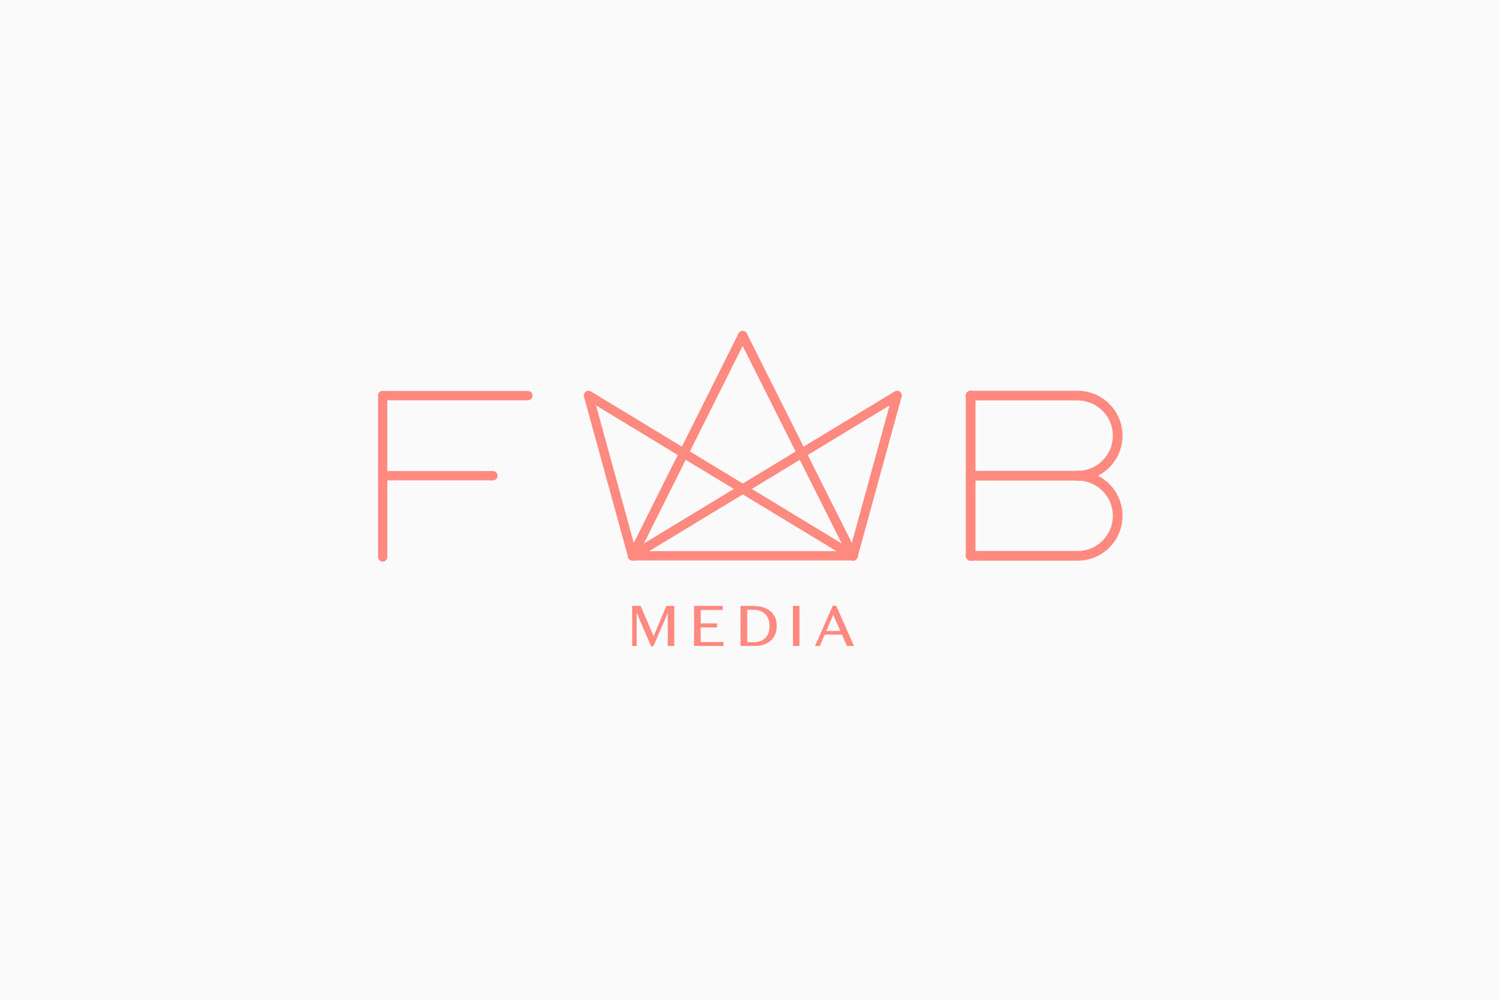 Logo by Stockholm-based graphic design studio Bedow for Swedish company Fab Media